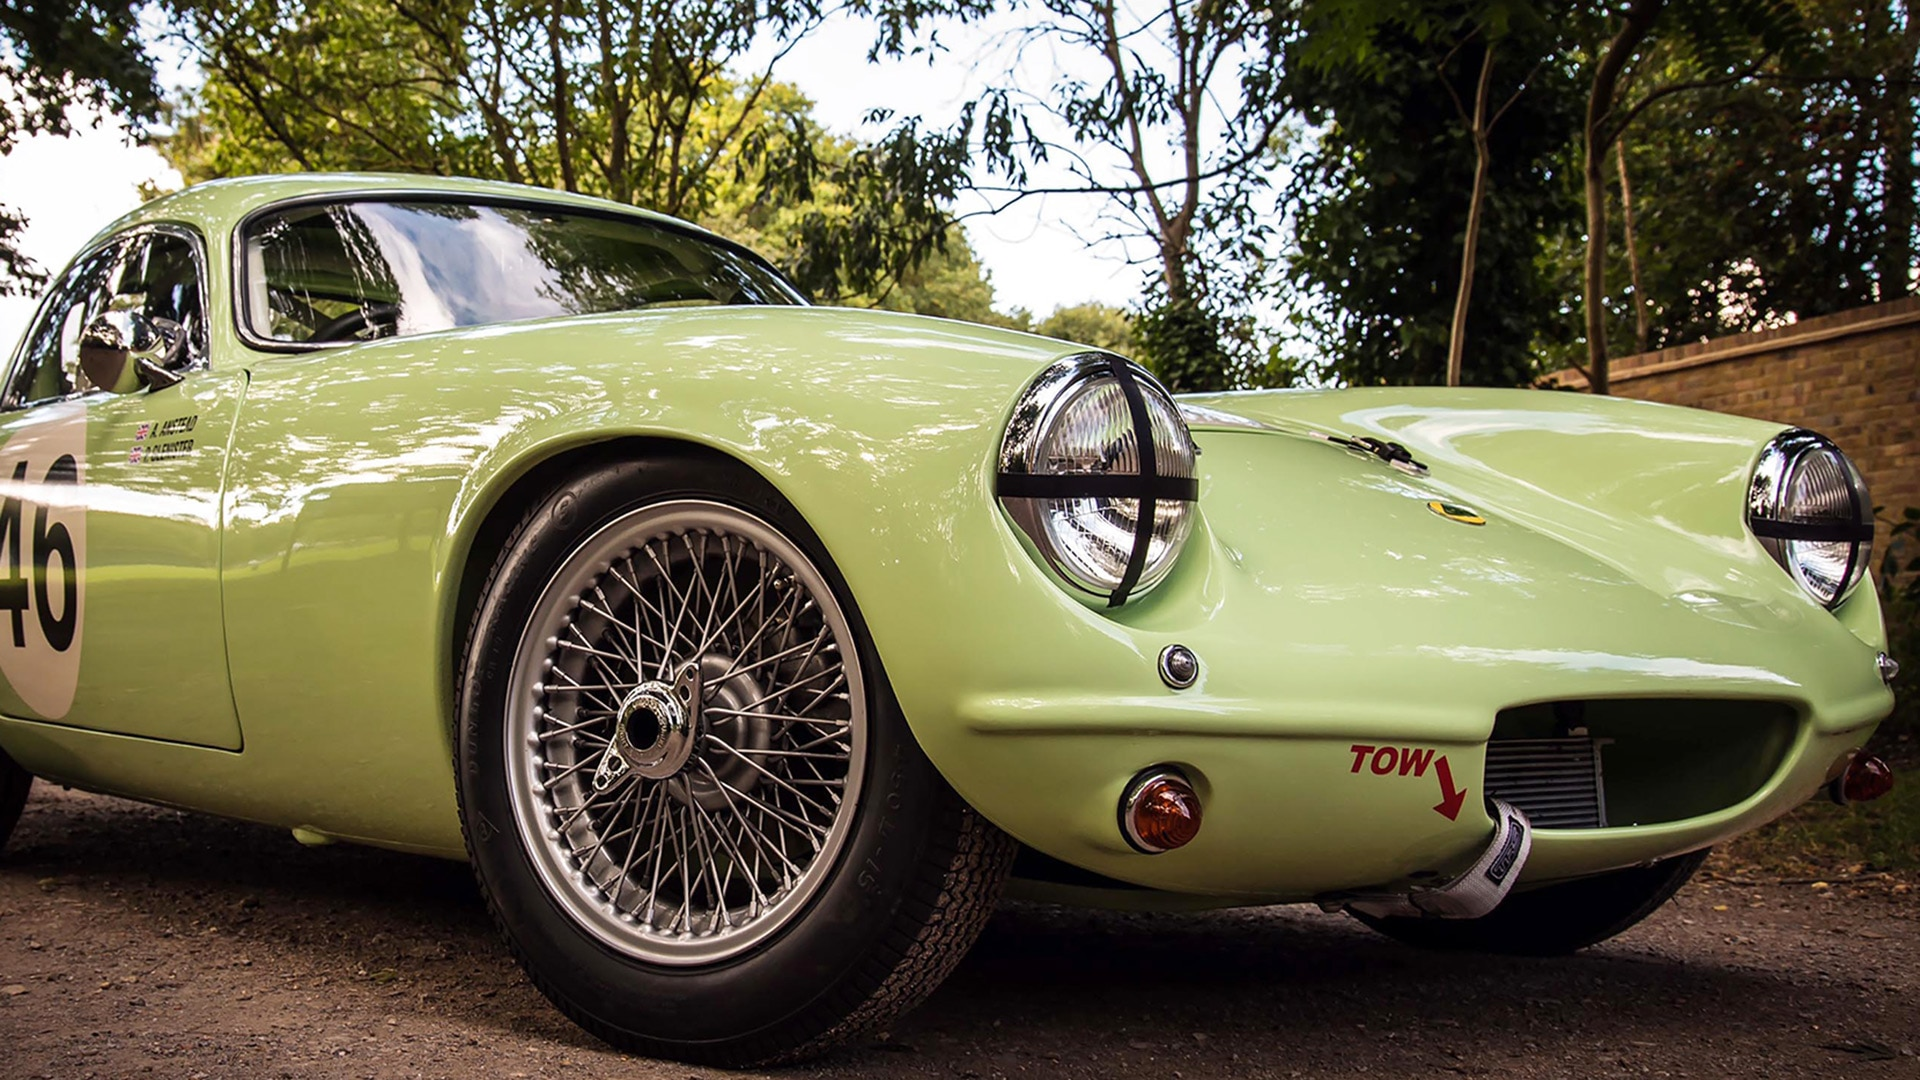 The Lost Lotus: Restoring a Race Car